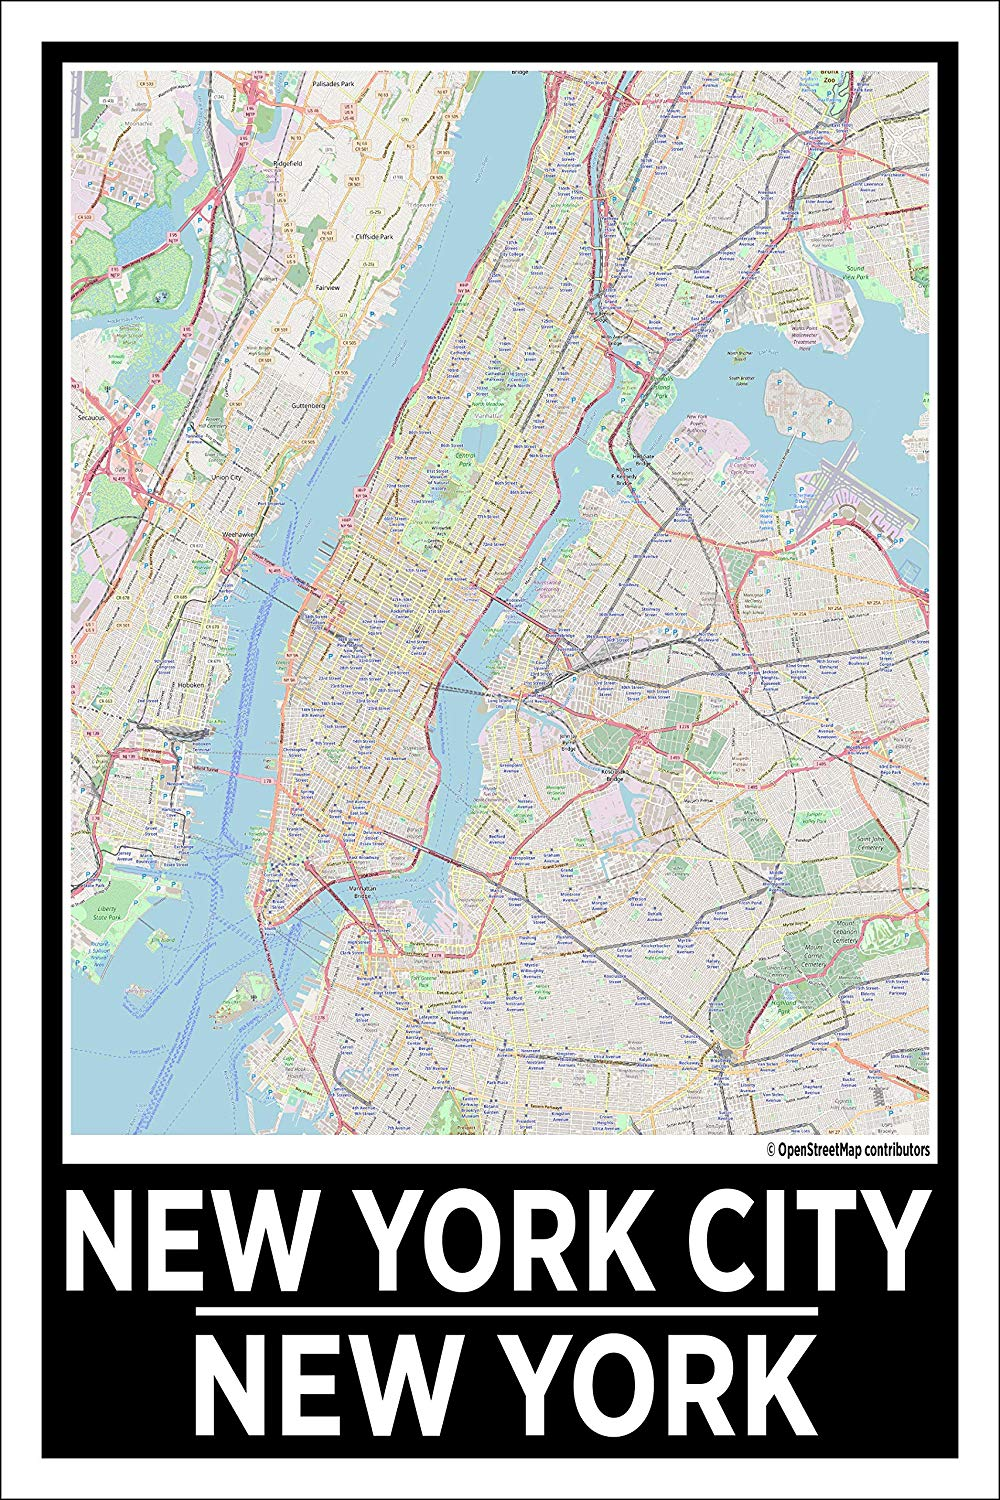 "Spitzy's New York City New York Map Poster - Home Wall Art for Your Bedroom or Home Office - Map of New York City, City Map Poster (12"" x 18"" Dimensions Include a White .5"" Border)"